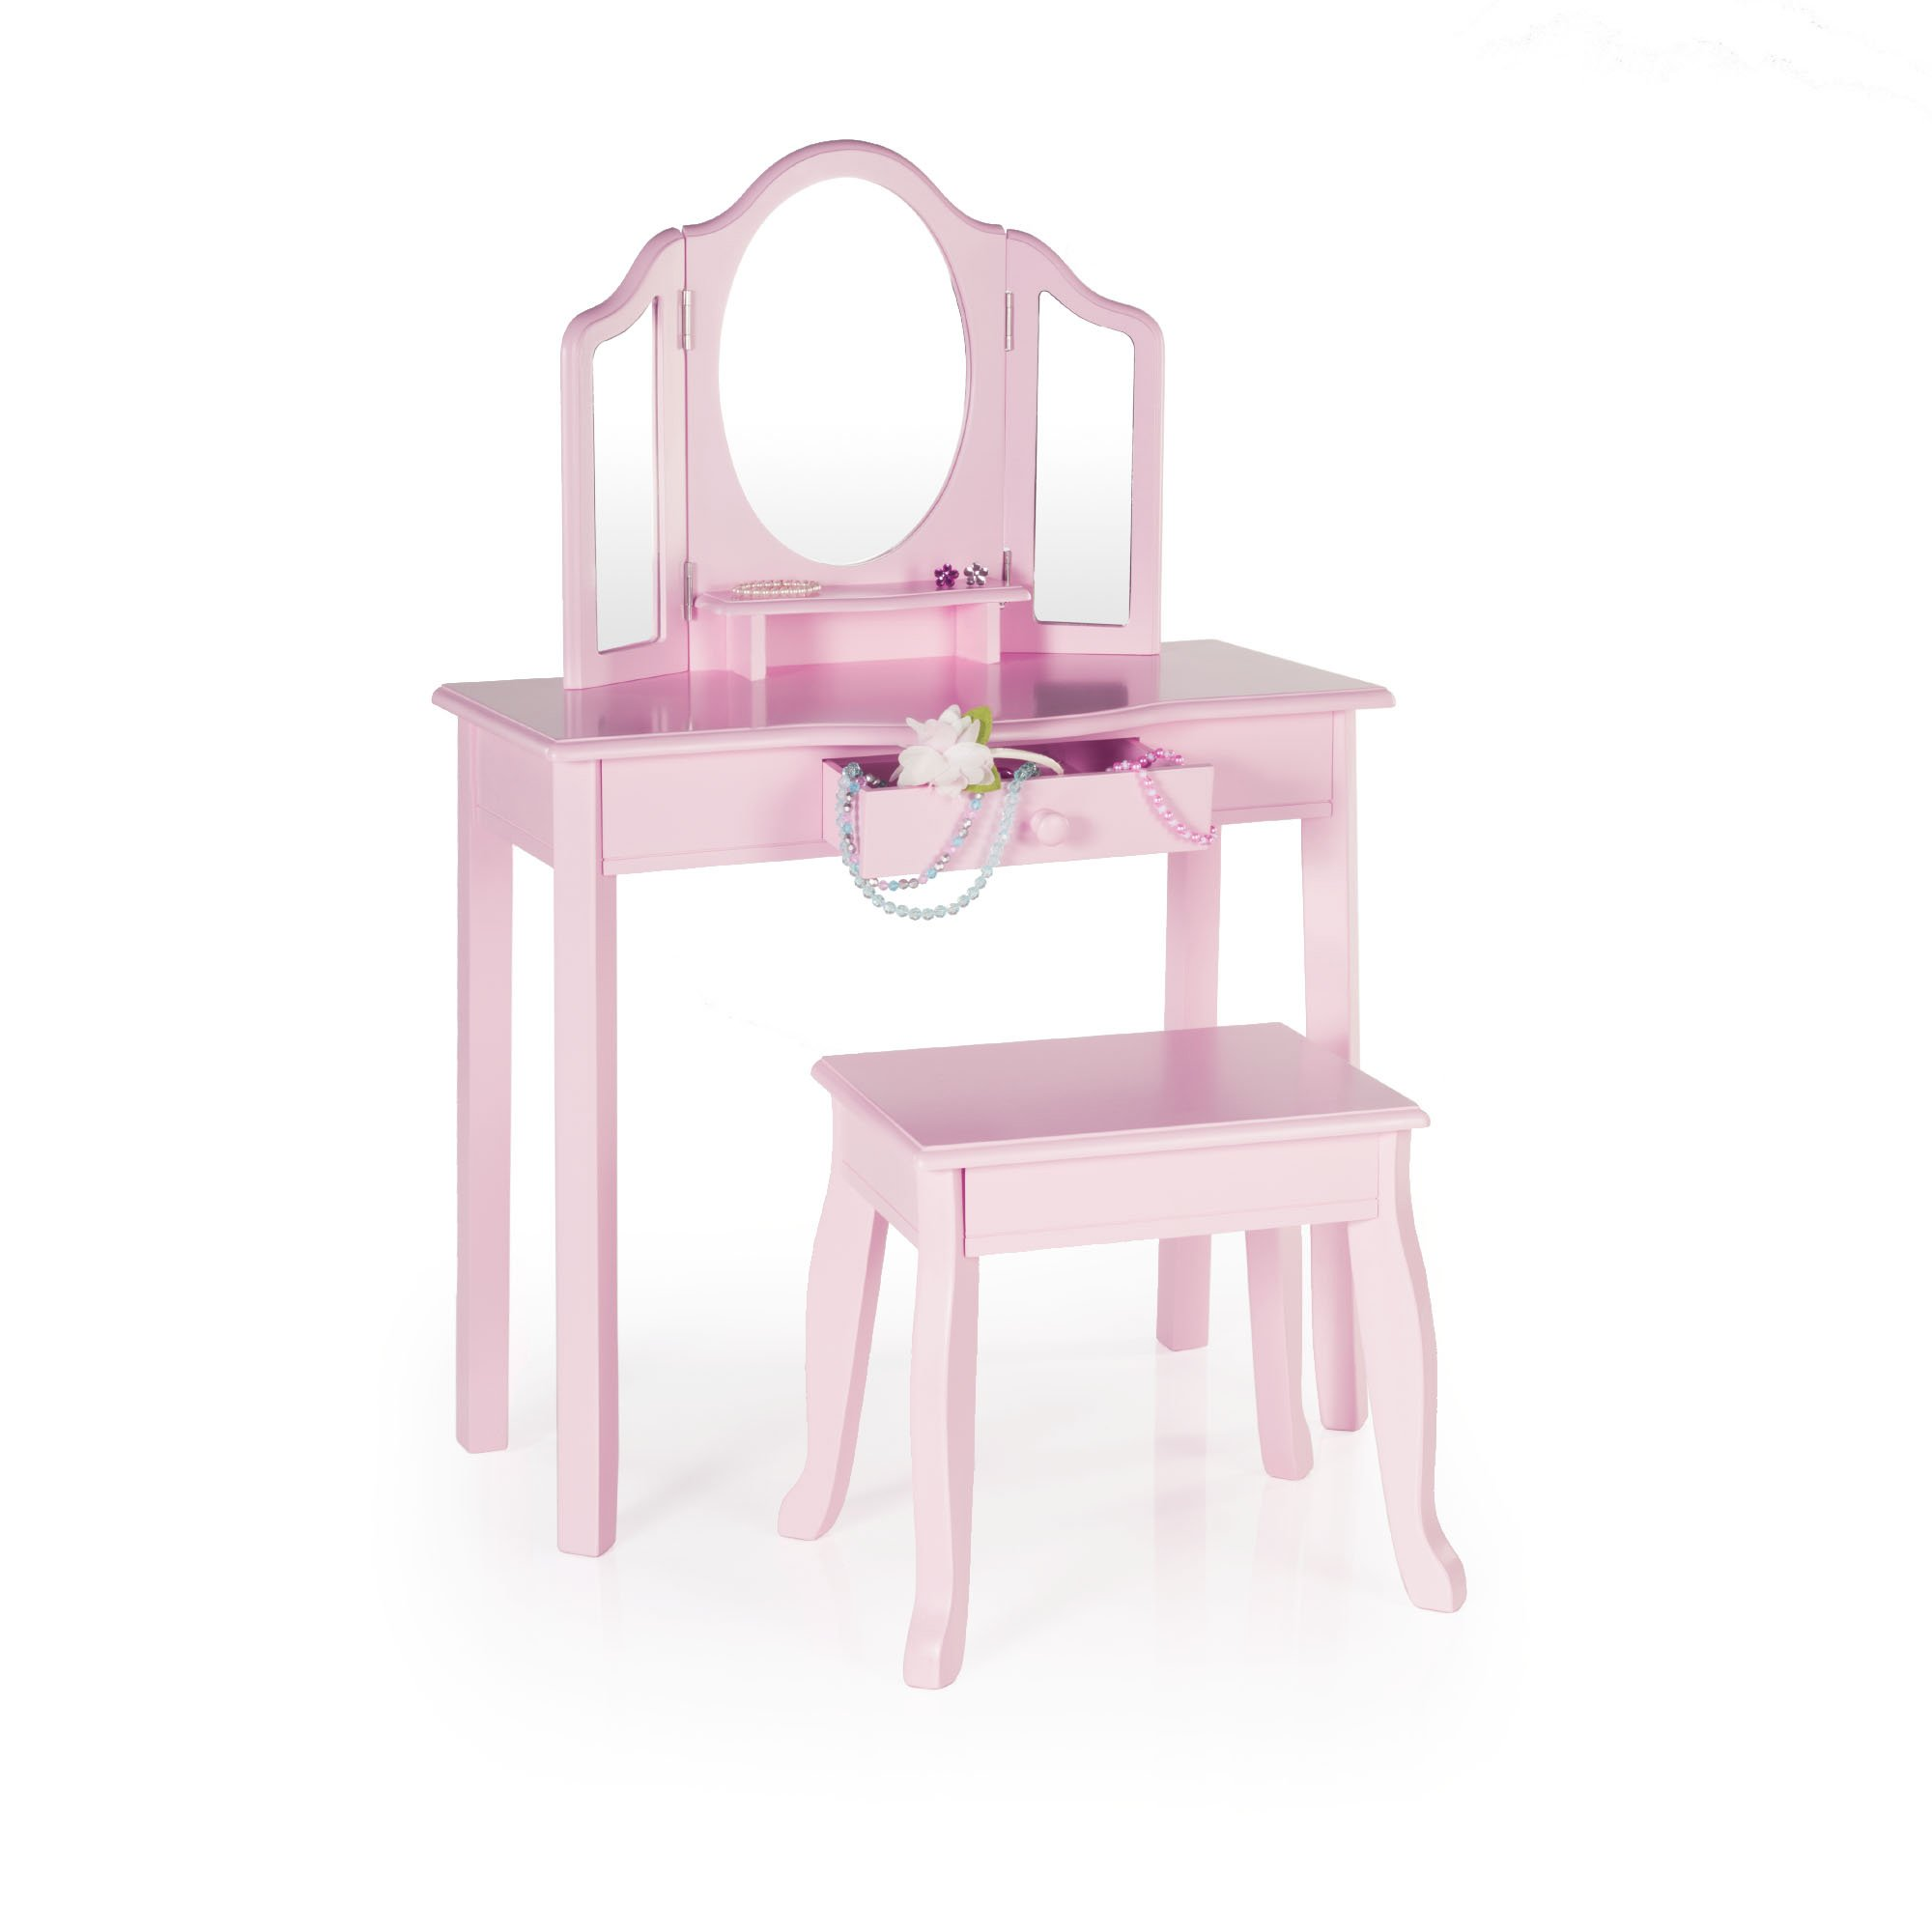 Guidecraft Girls Wood Vanity Table and Stool Set with 3 Mirrors and Make-Up Storage Drawer Pink - Kids Furniture